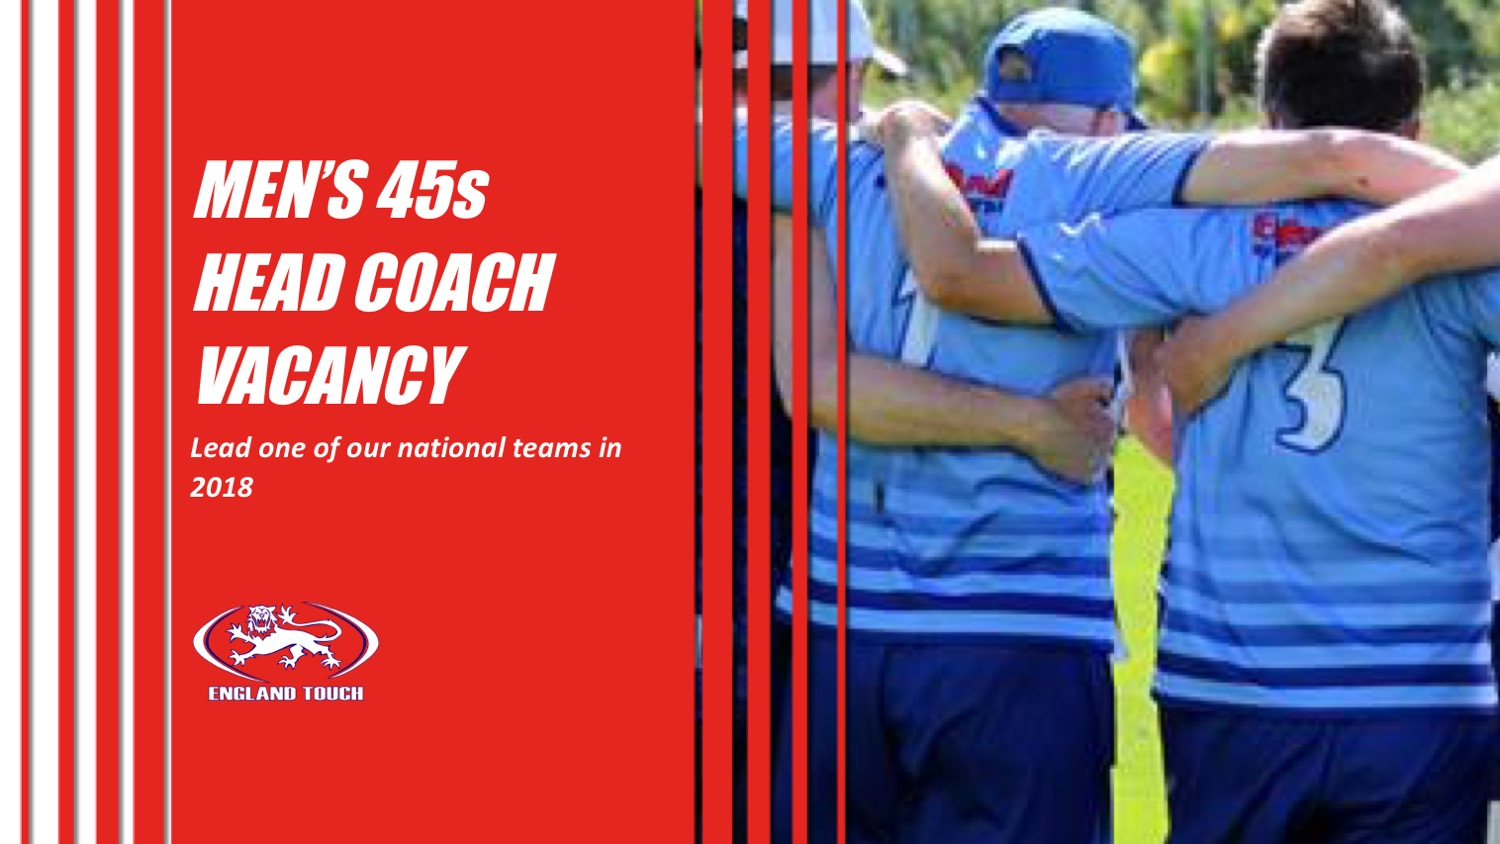 Men's 45s head coach vacancy